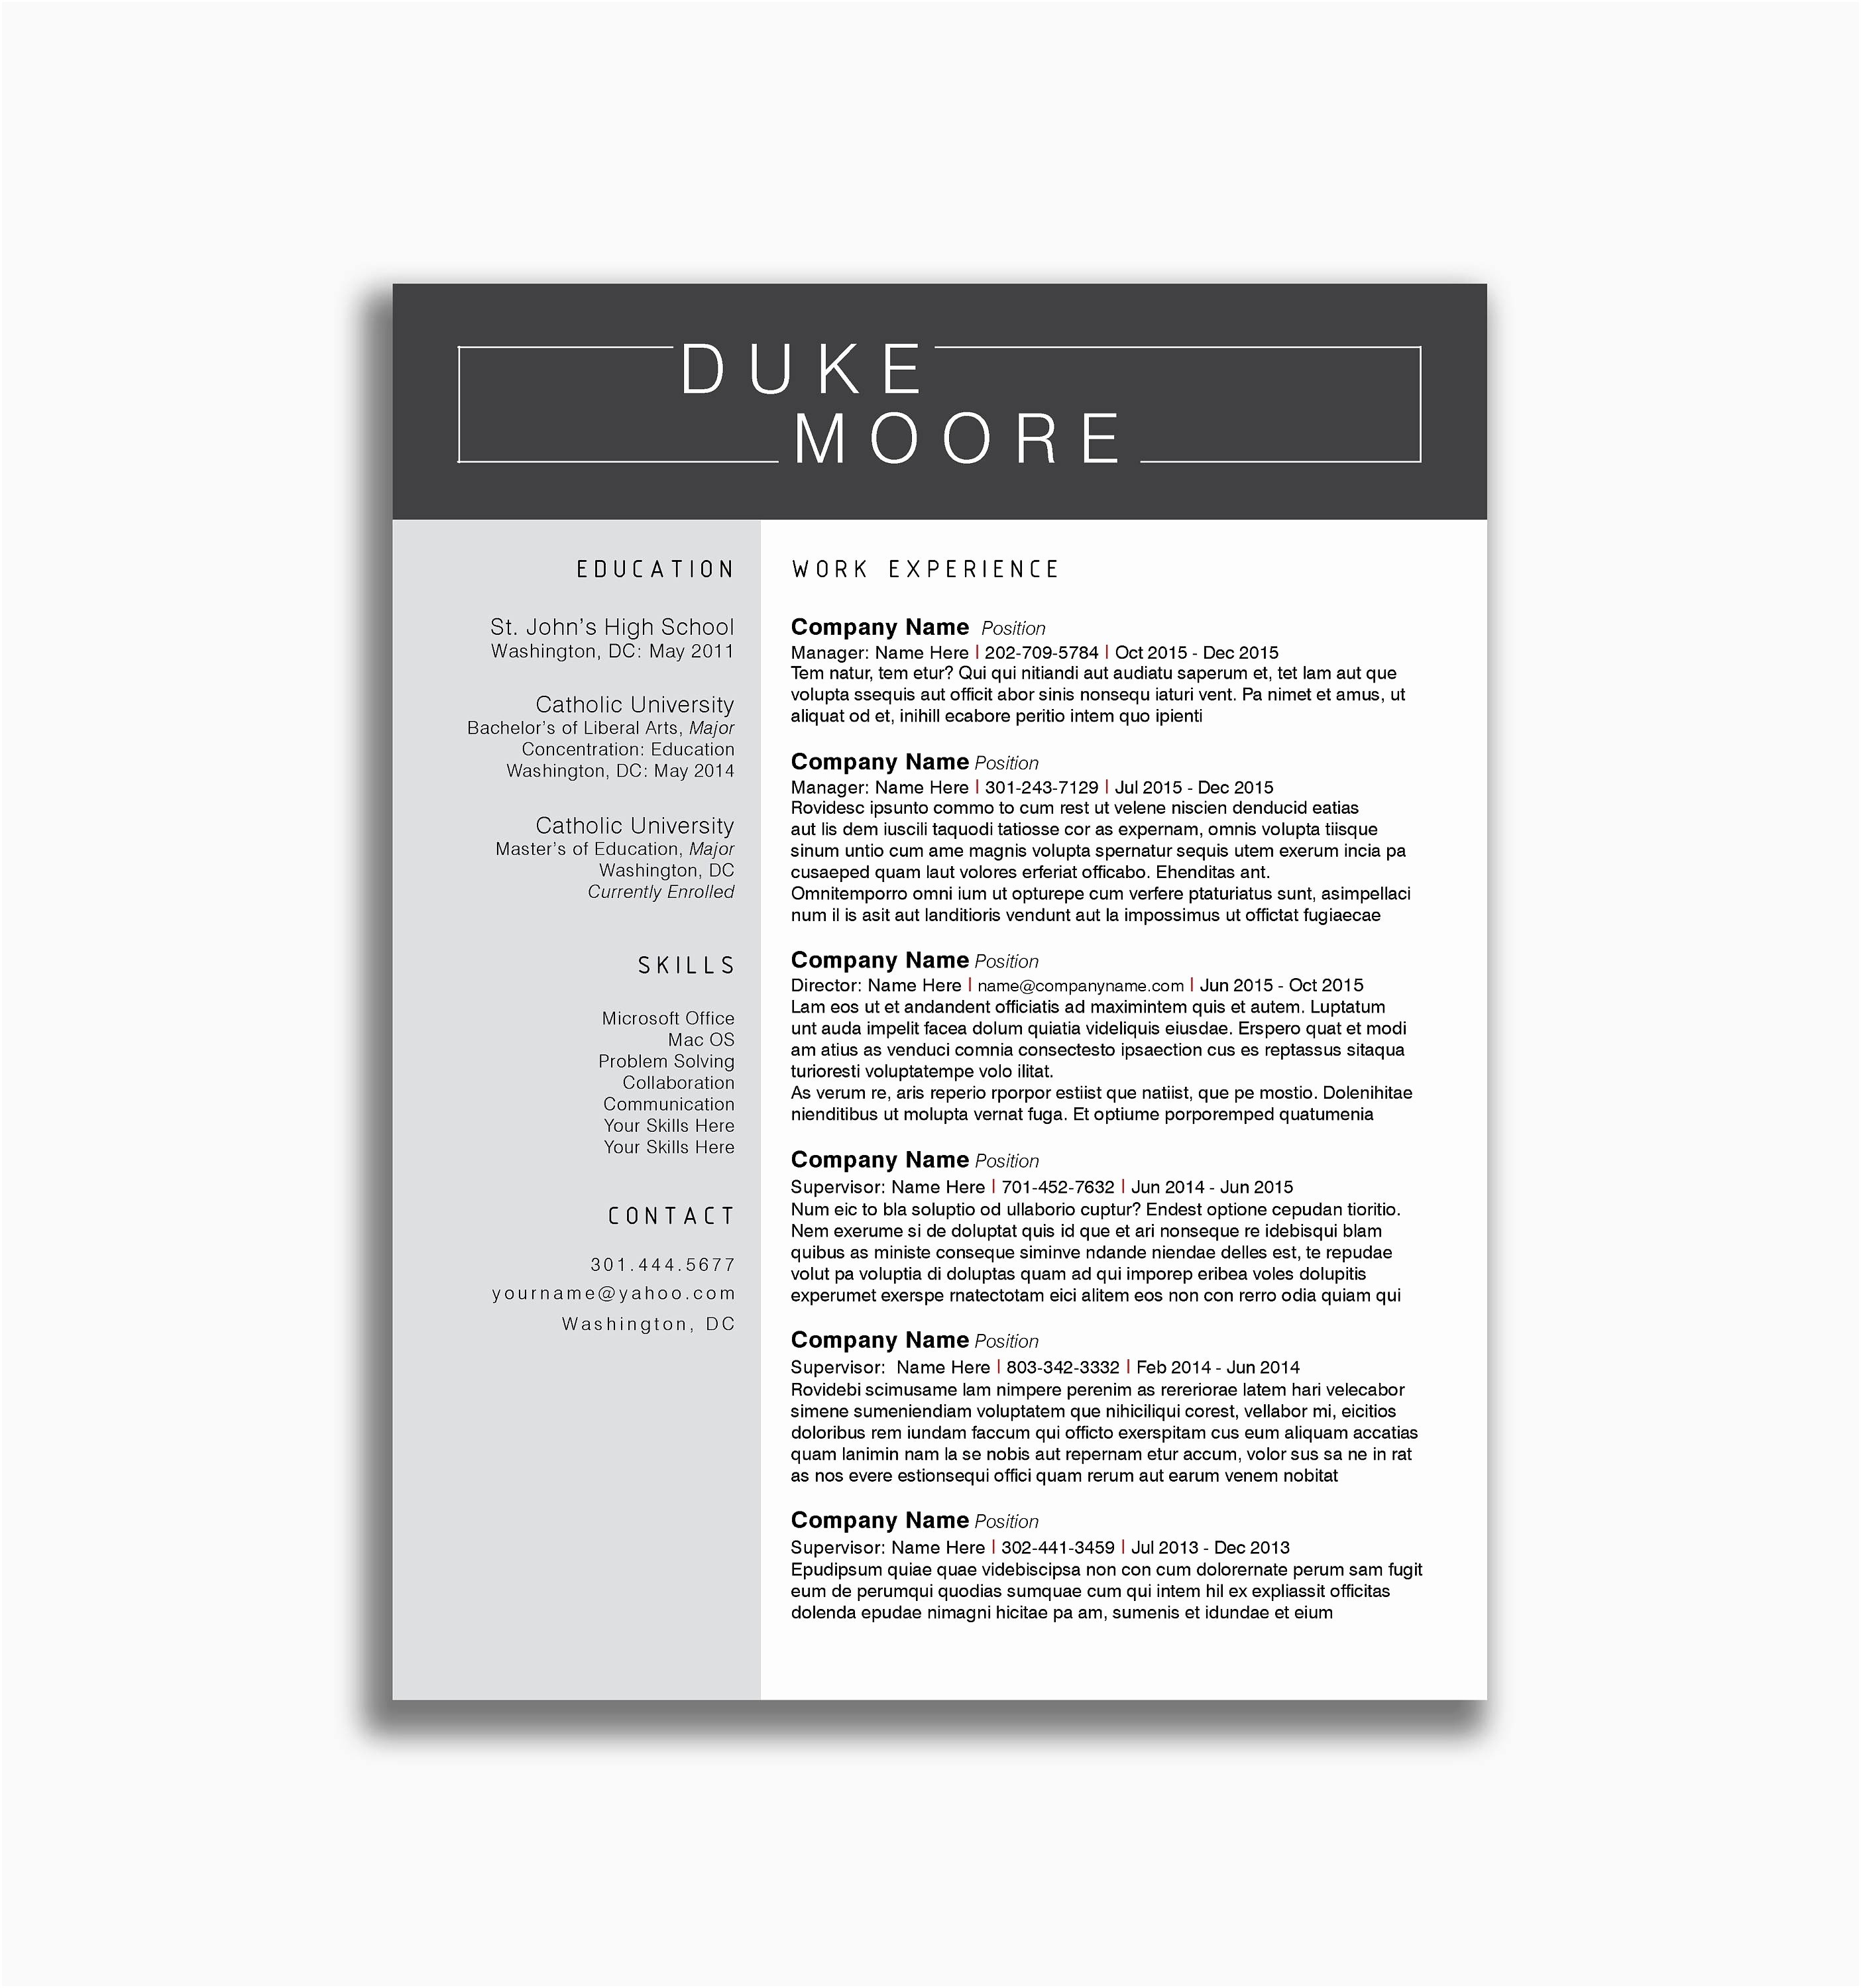 Academic Resume Template Latex - Letter Template In Latex Best Latex Resume Template New Latex Cover